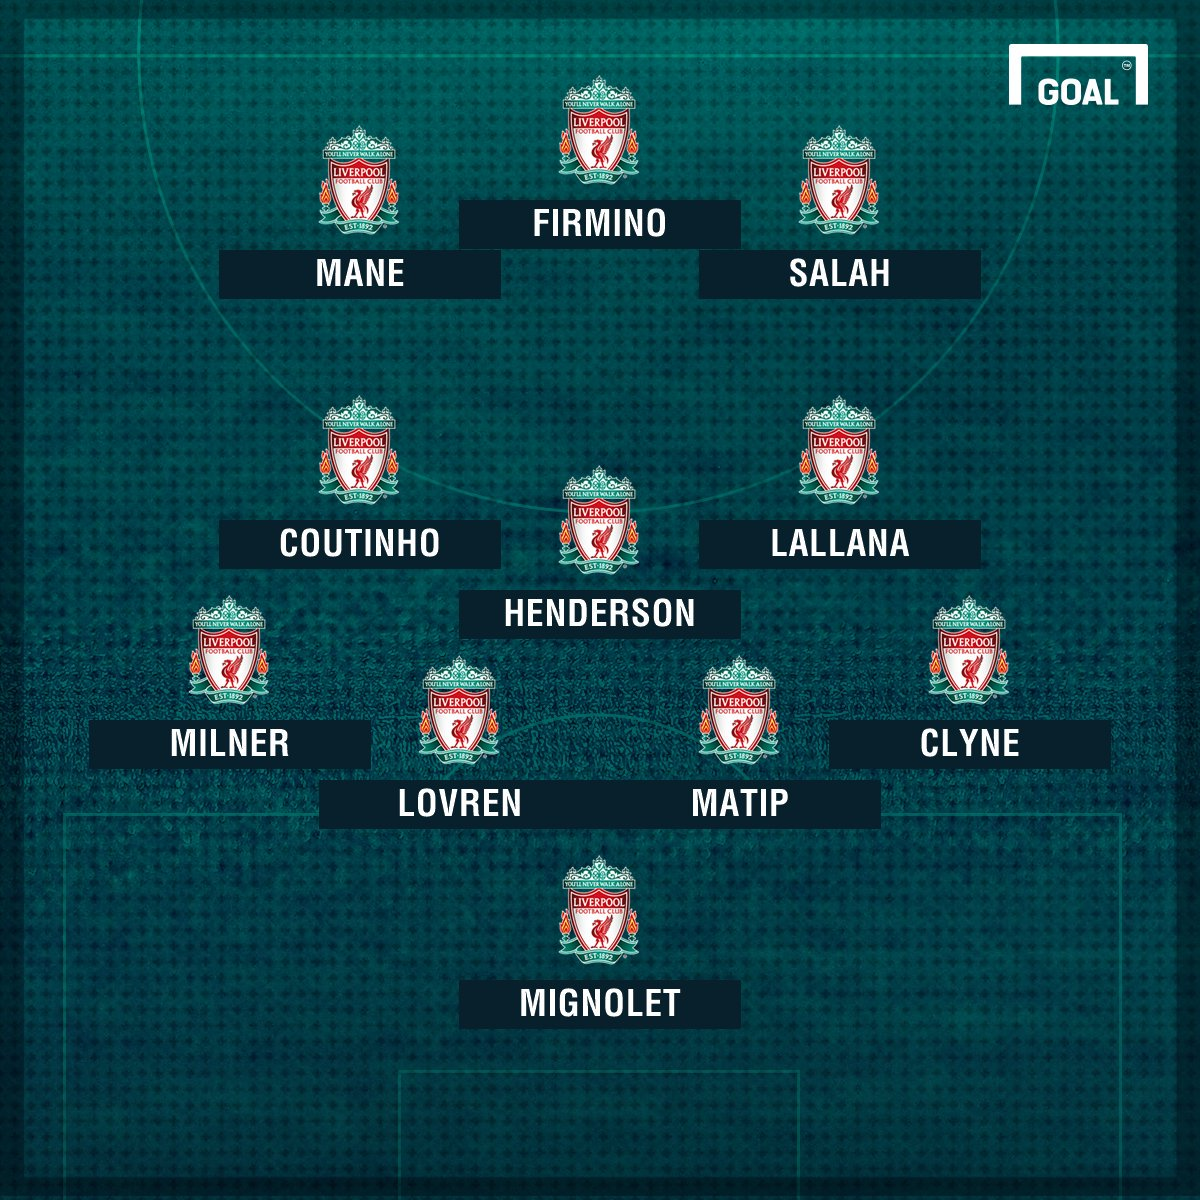 Mane and Salah weaponry. #SalahAnnounced  #Mane #liverpoolfc #Goal <br>http://pic.twitter.com/mnTvNE4gX0